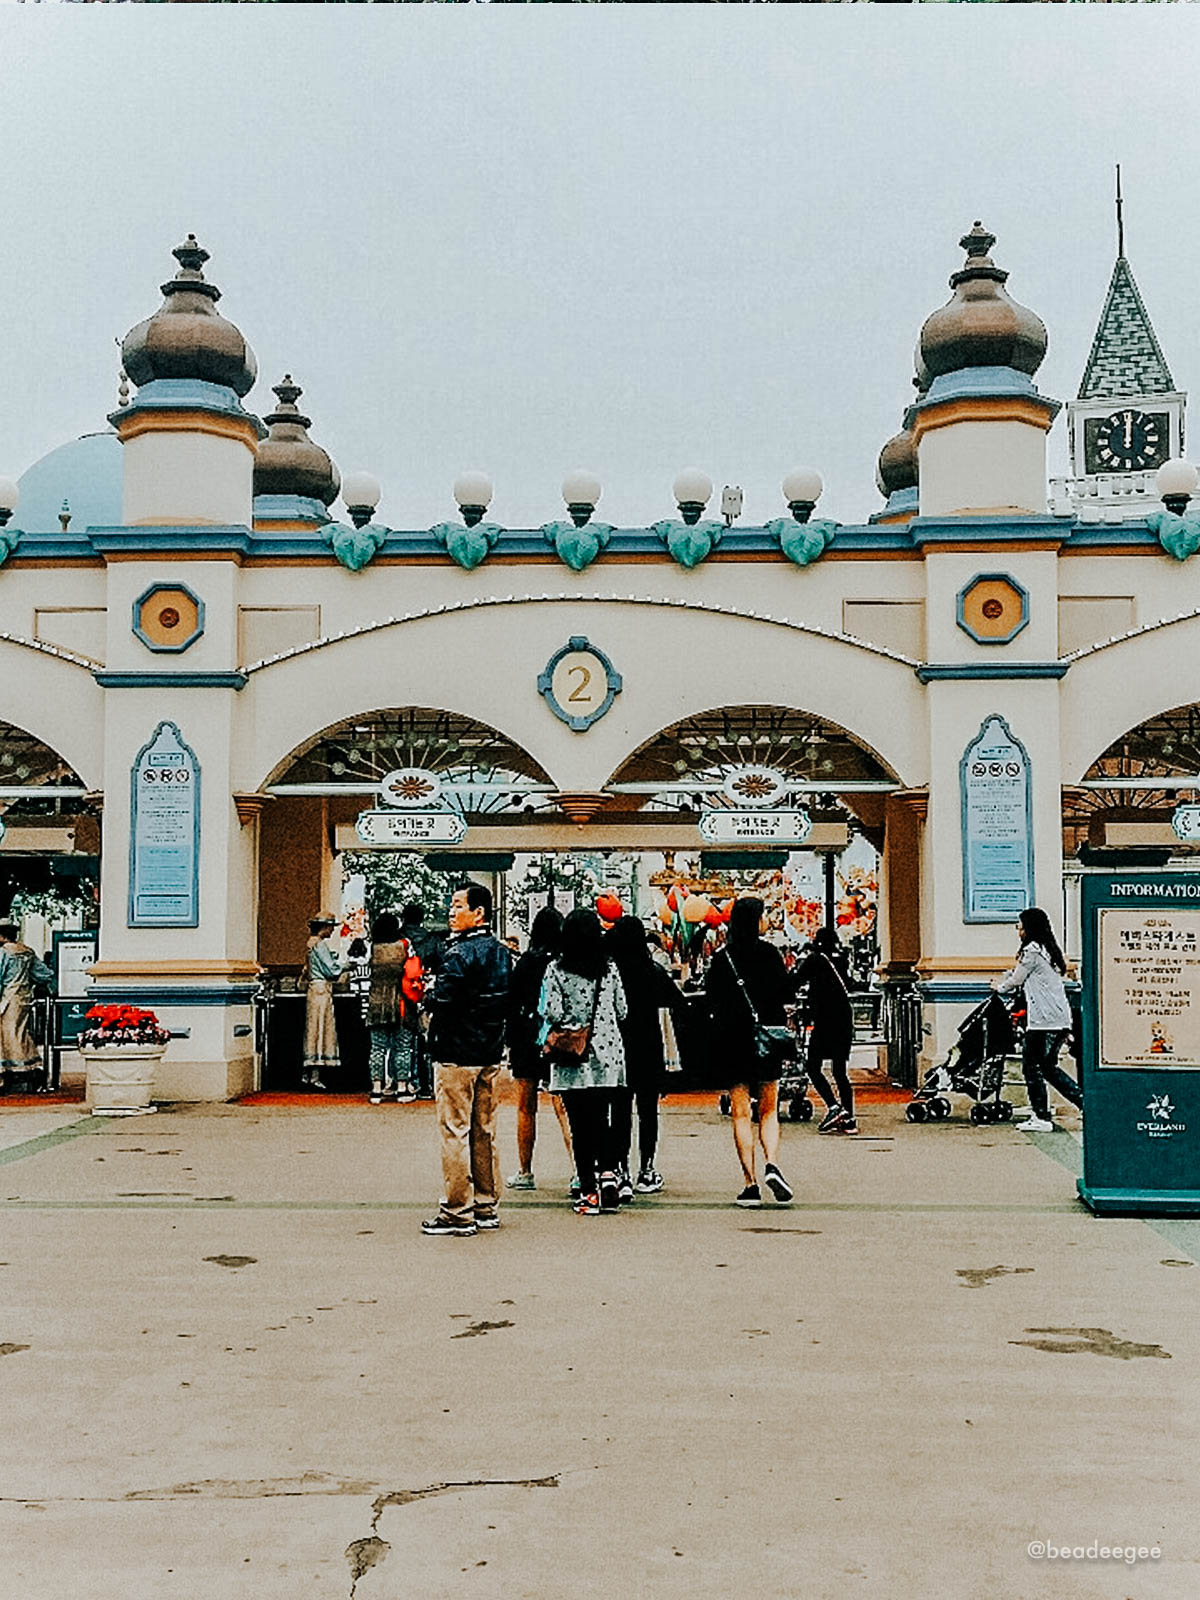 the entrance gate of everland